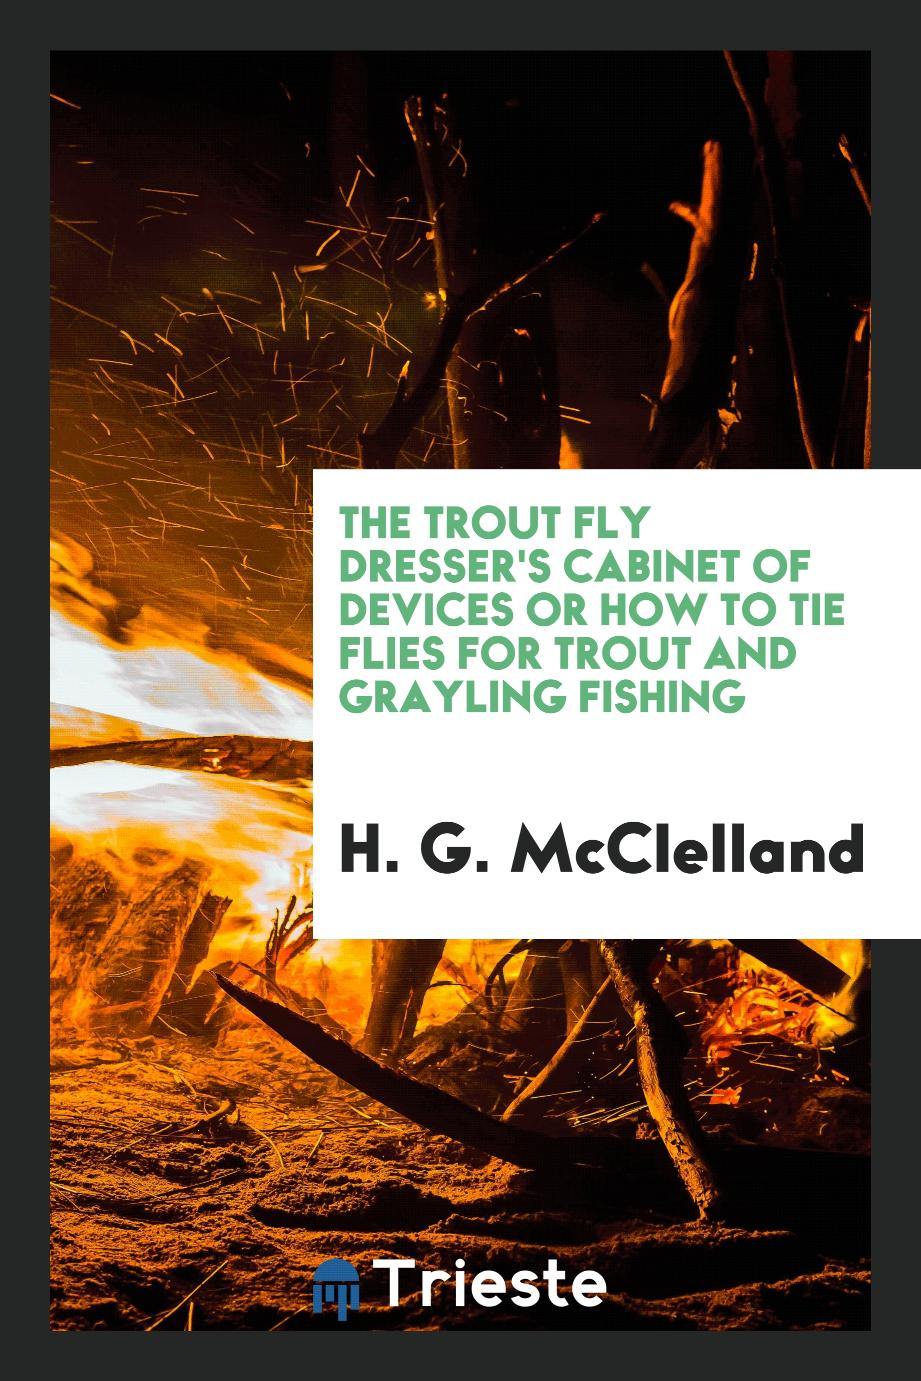 The Trout Fly Dresser's Cabinet of Devices or How to Tie Flies for Trout and Grayling Fishing